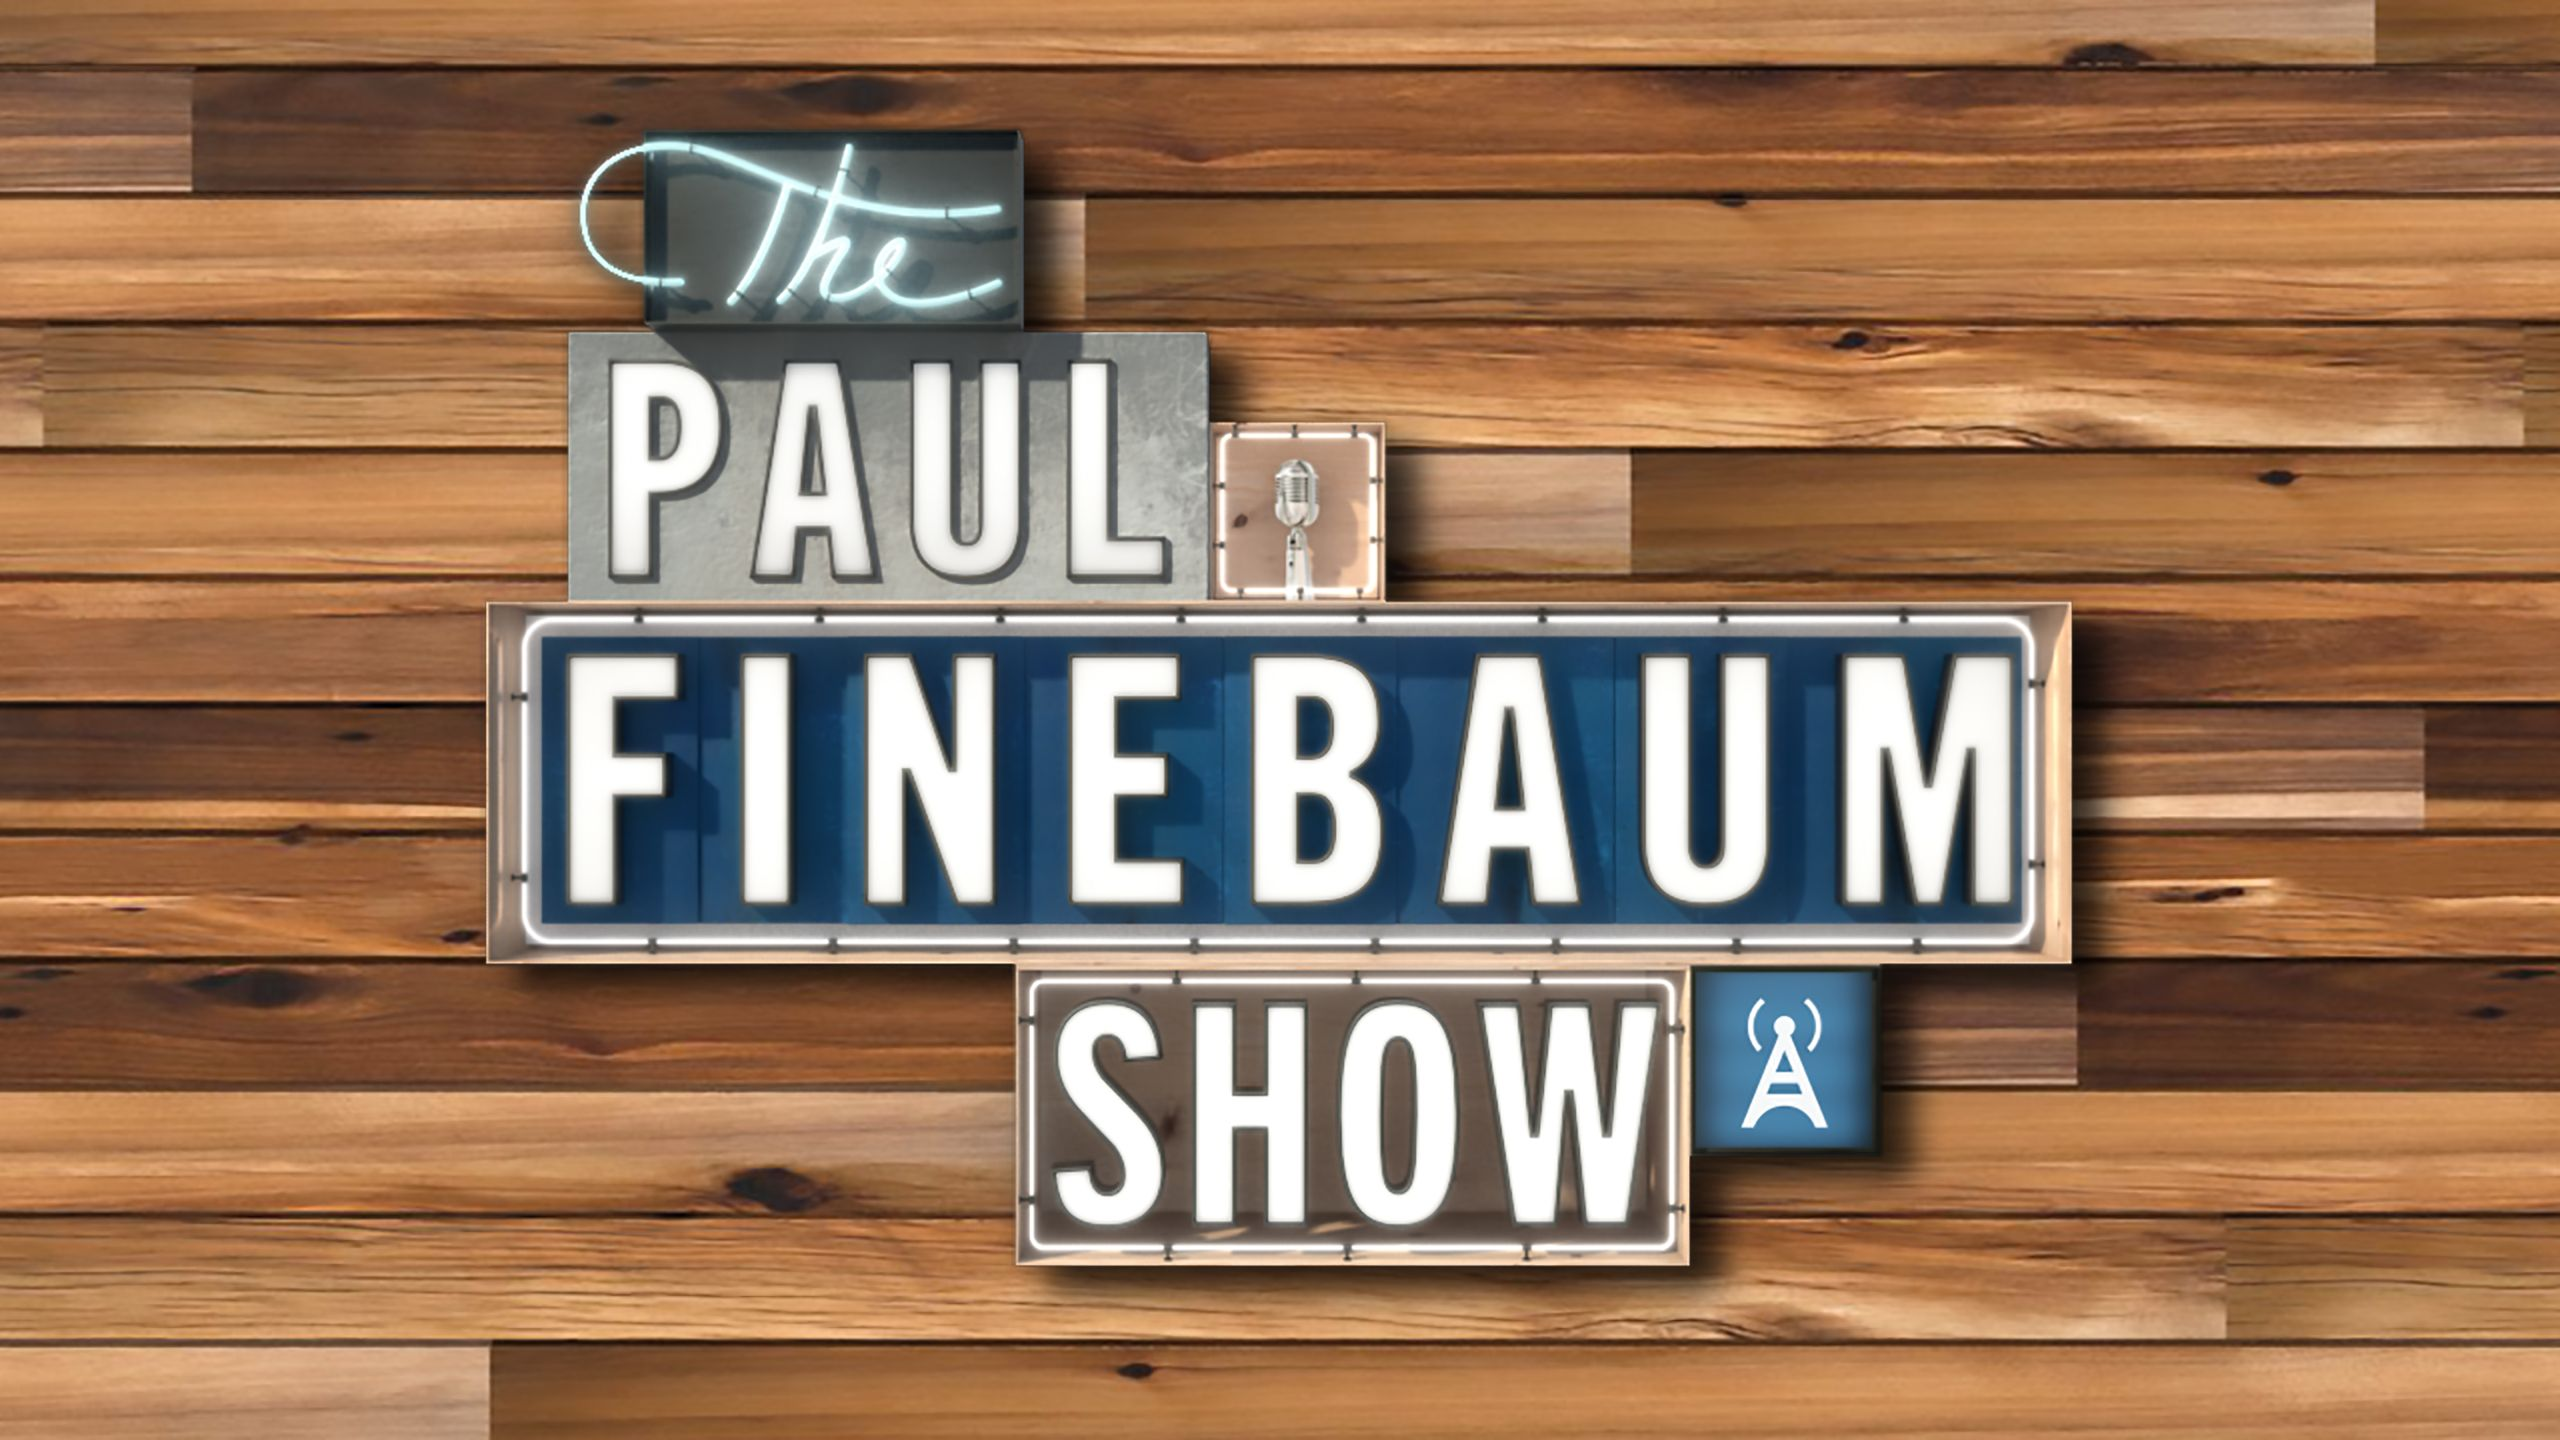 Thu, 5/17 - The Paul Finebaum Show